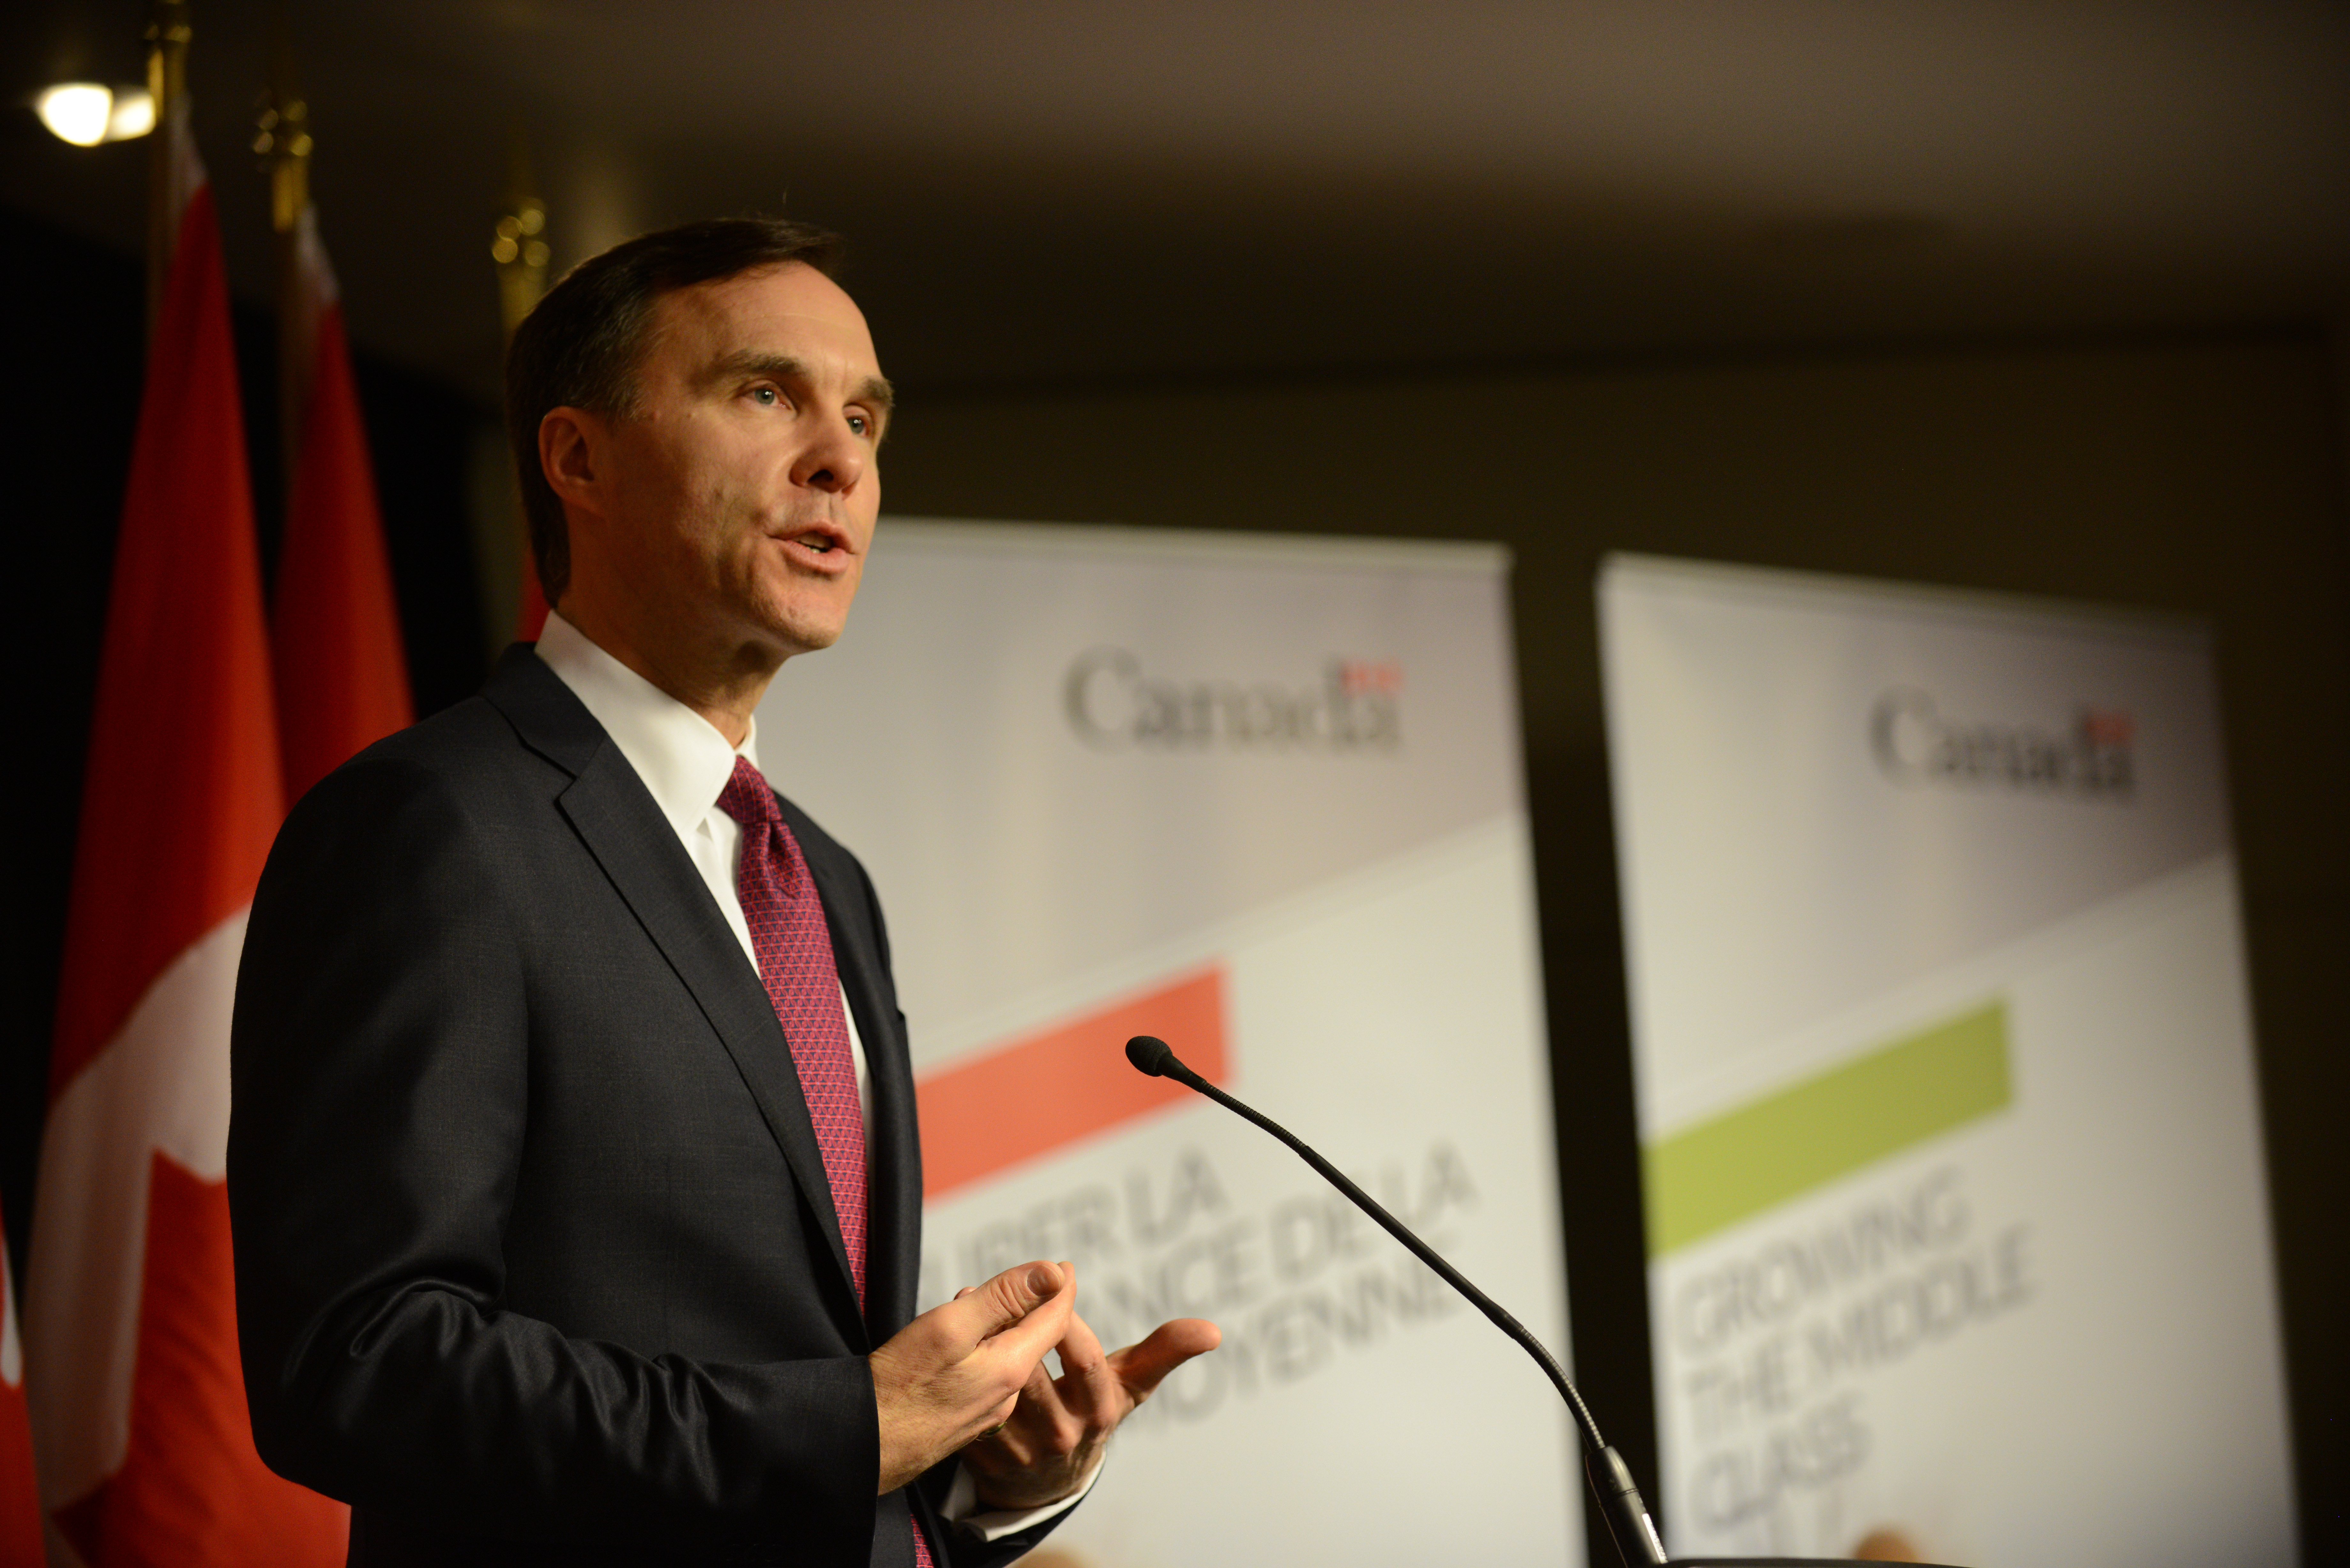 Canada's Budget 2017 Innovation Push Draws Skepticism Amid Praise